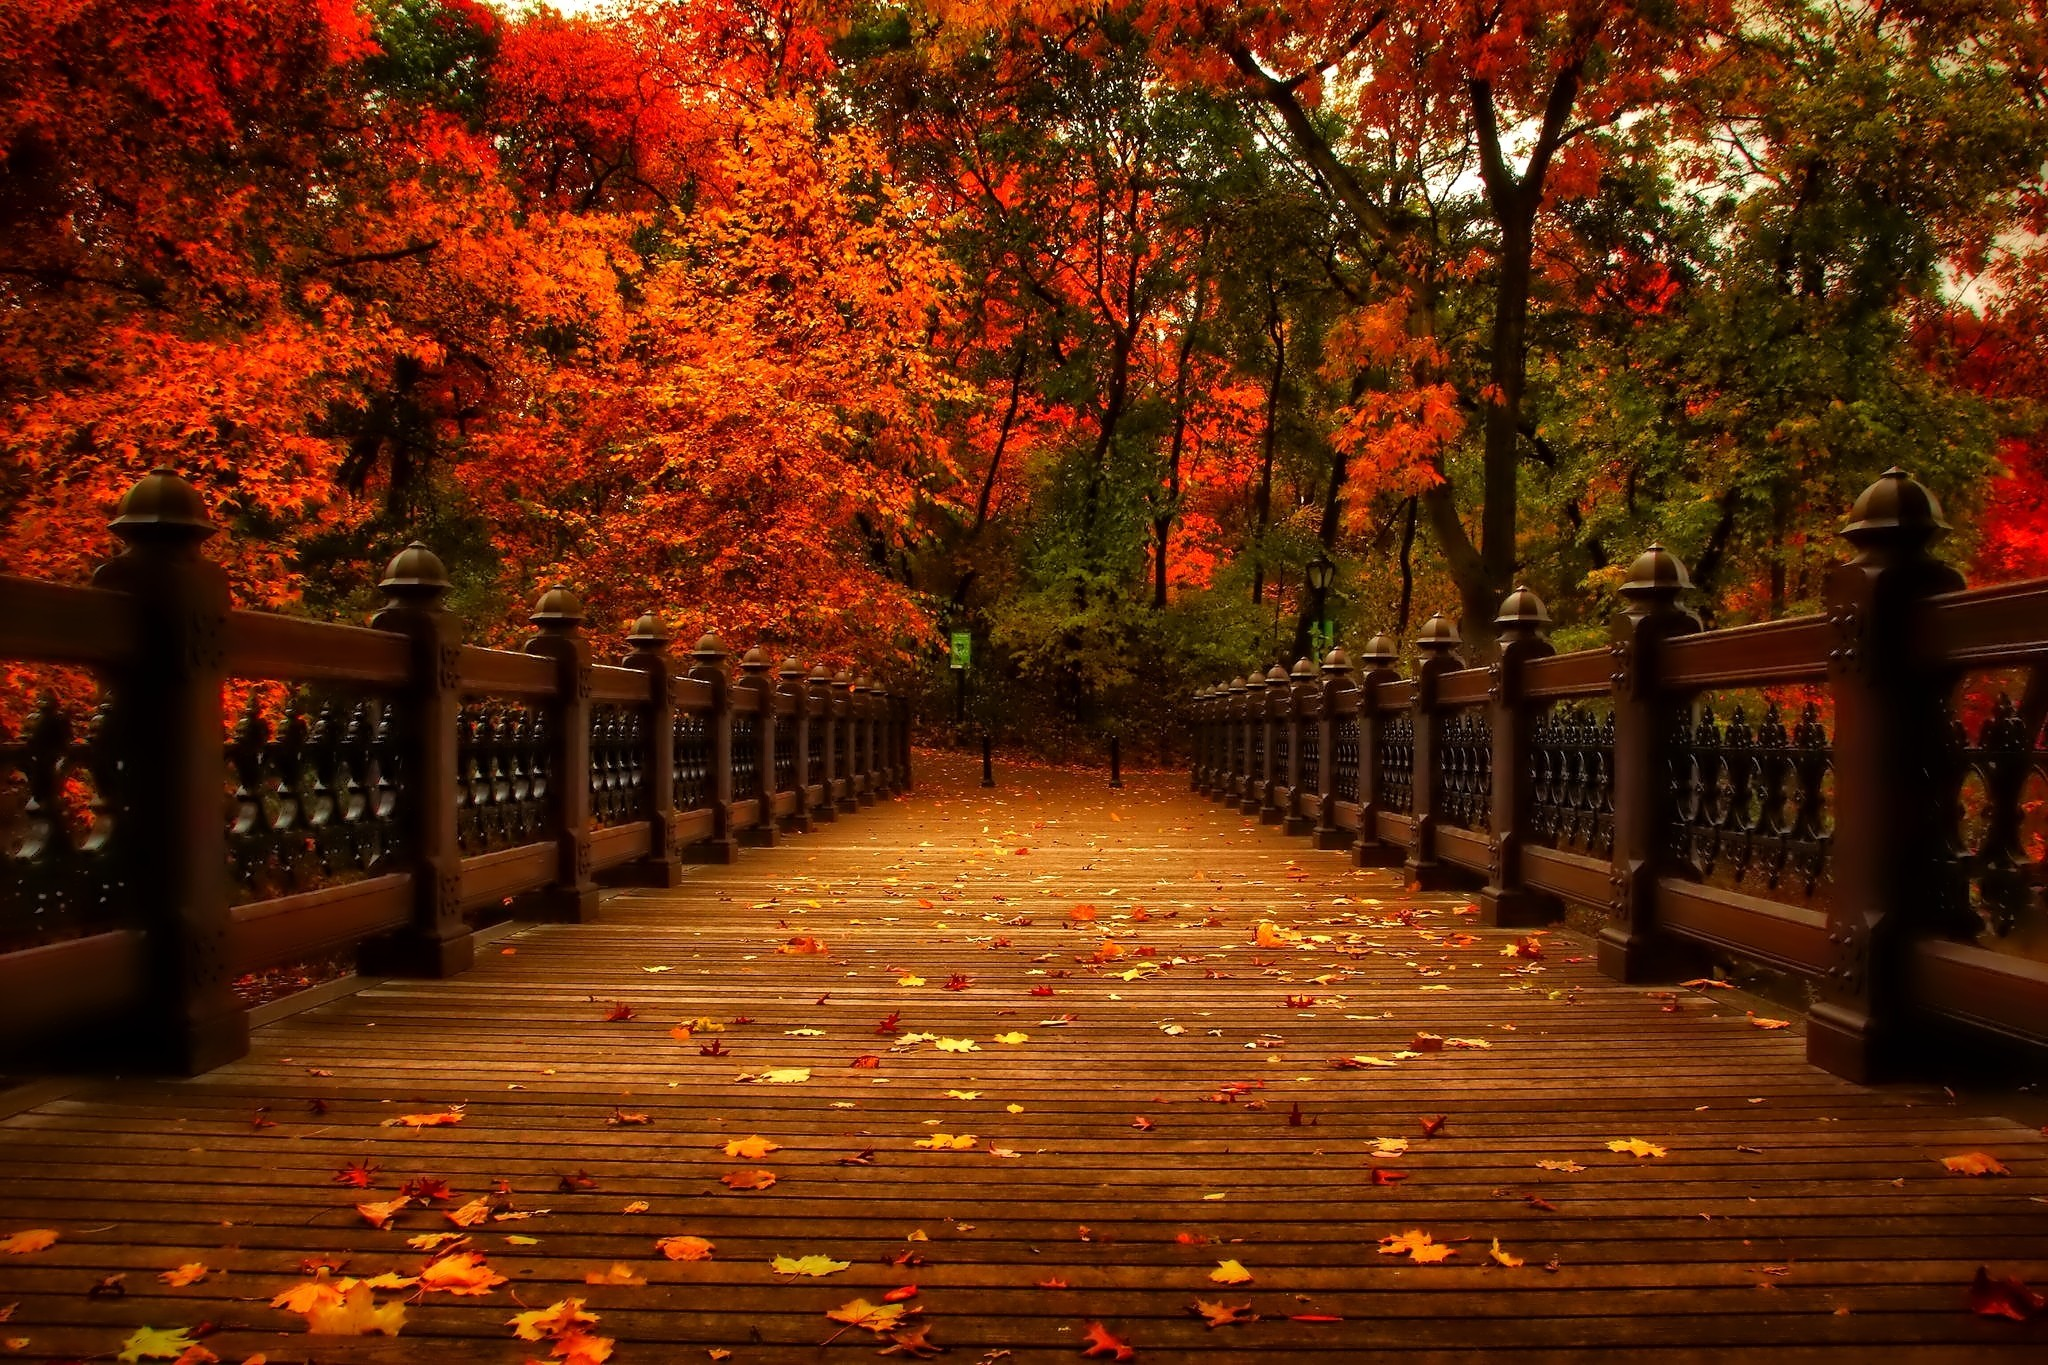 Misc November Colorful Golden Shine Tree Glow Branches Autumn Colors Nice  Fall Nature Beautiful Lovely Reflection